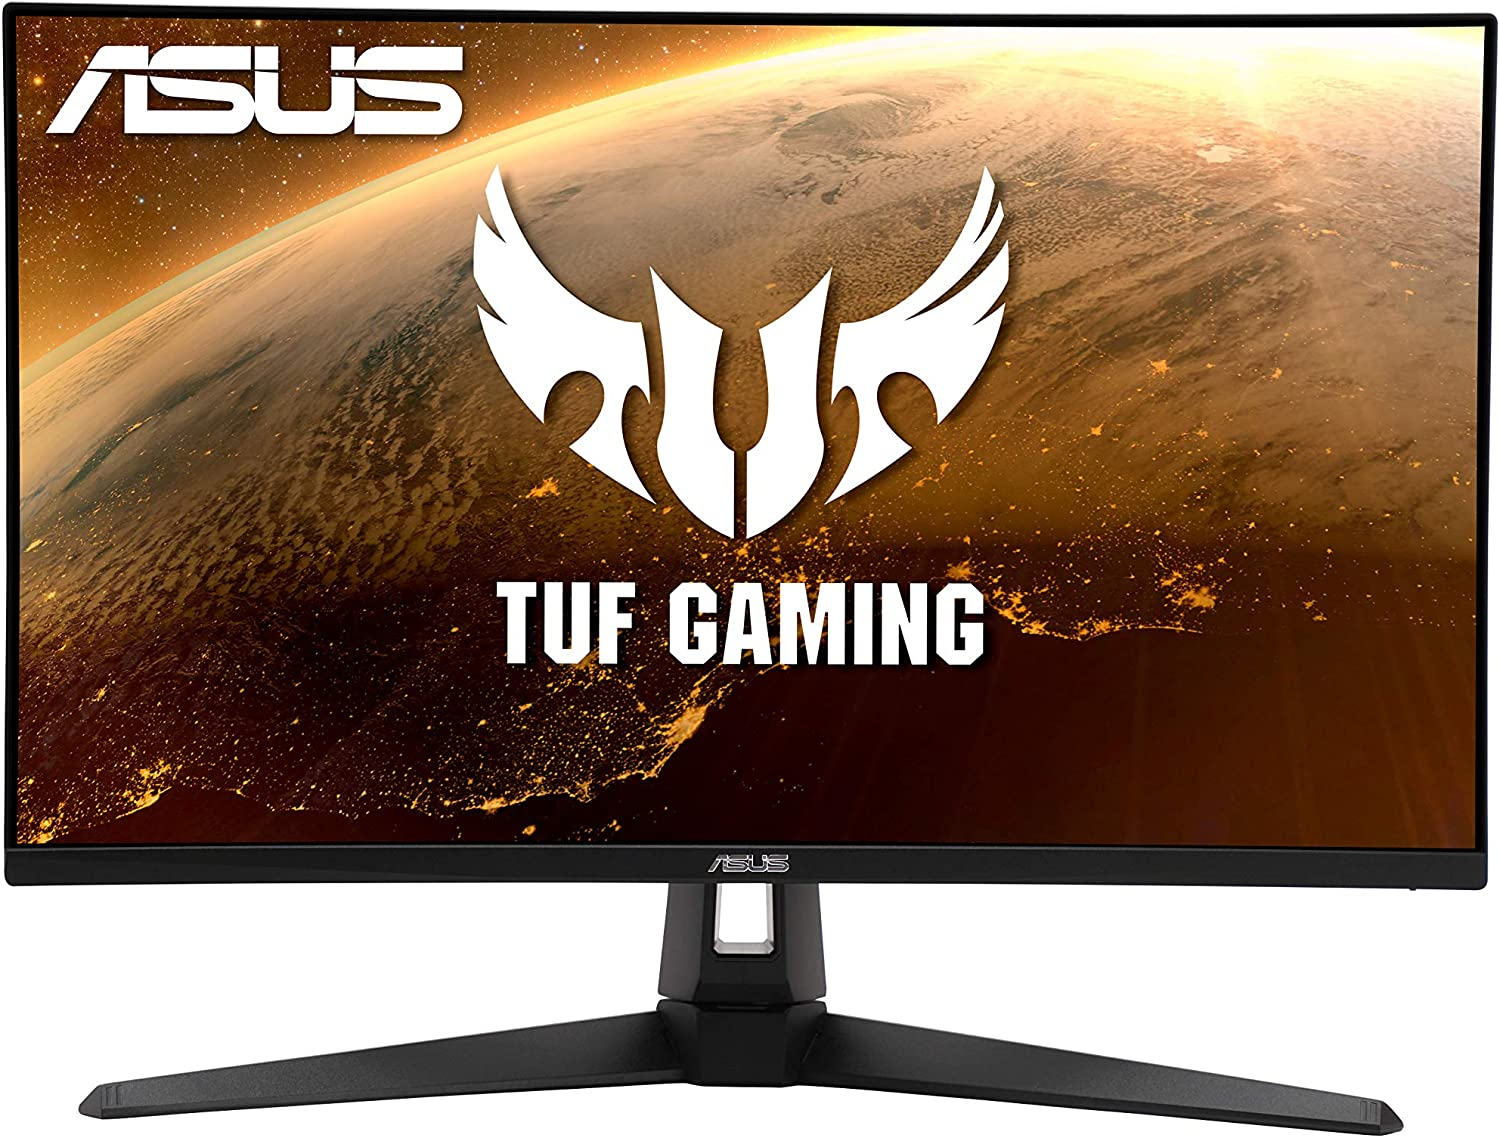 ASUS TUF VG279Q1A - Monitor gaming de 27'' FullHD (1920 x 1080, IPS, 165 Hz, 1 ms (MPRT), resolución de Movimiento Extrema, sincronización adaptativa, FreeSync Premium) Negro